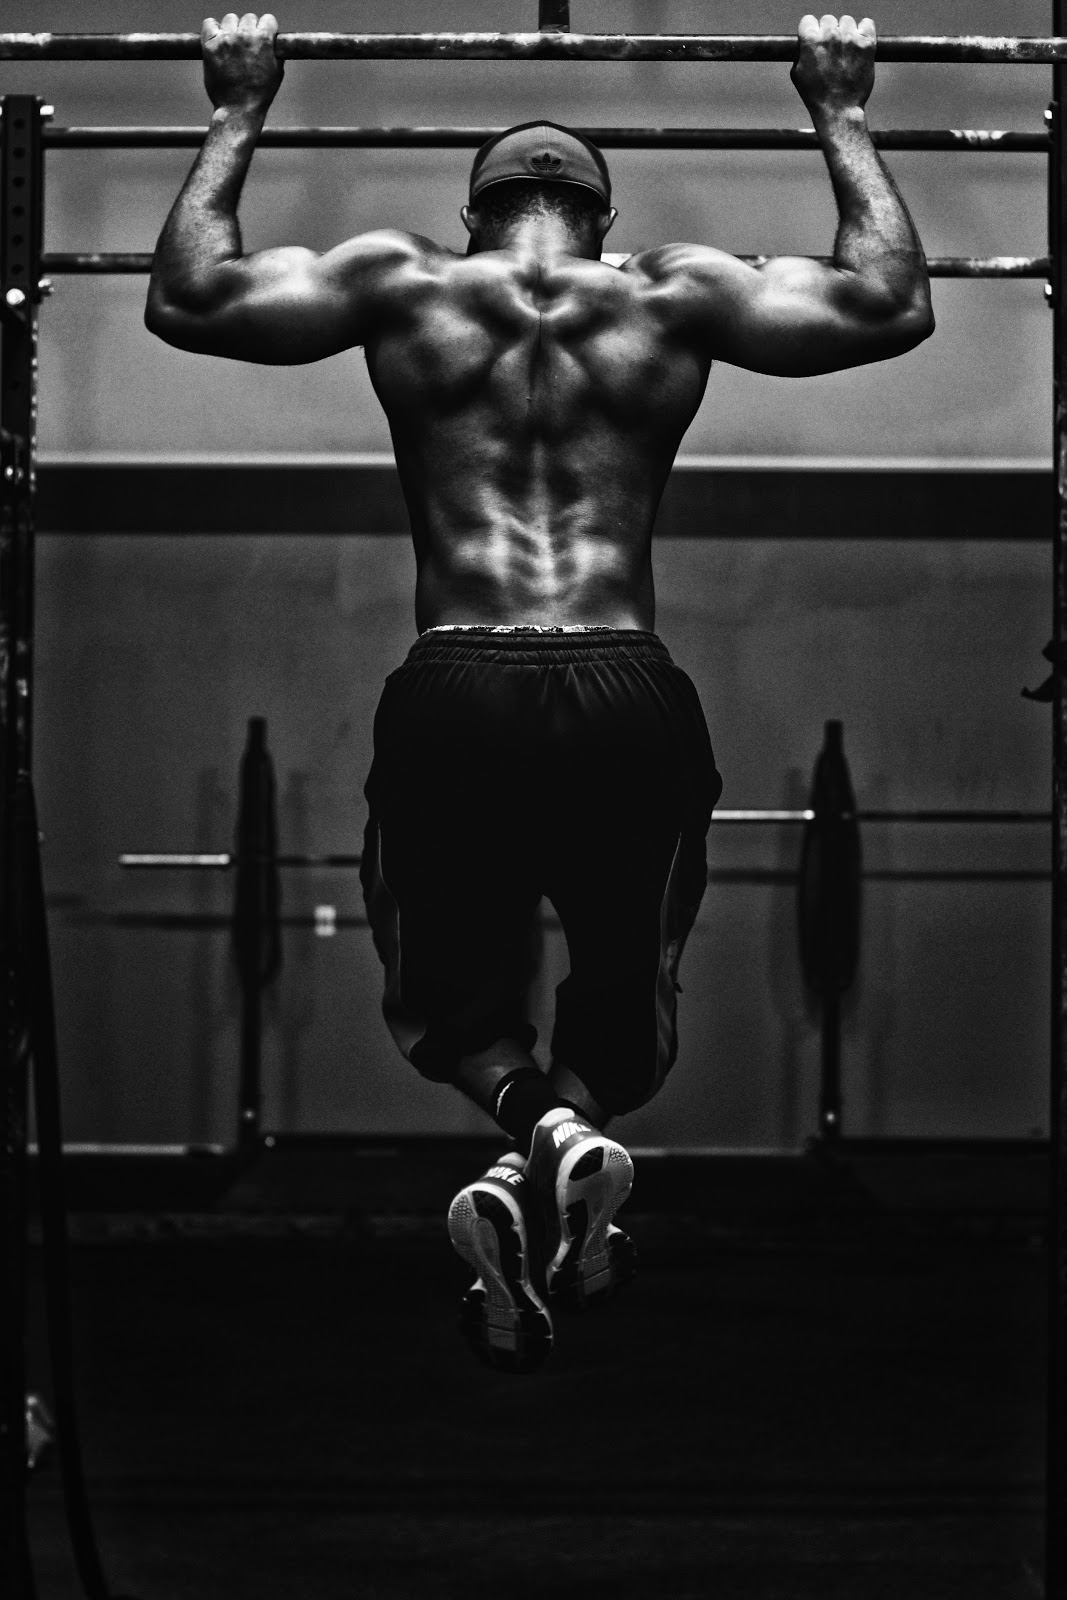 A muscular male doing pull ups at the gym